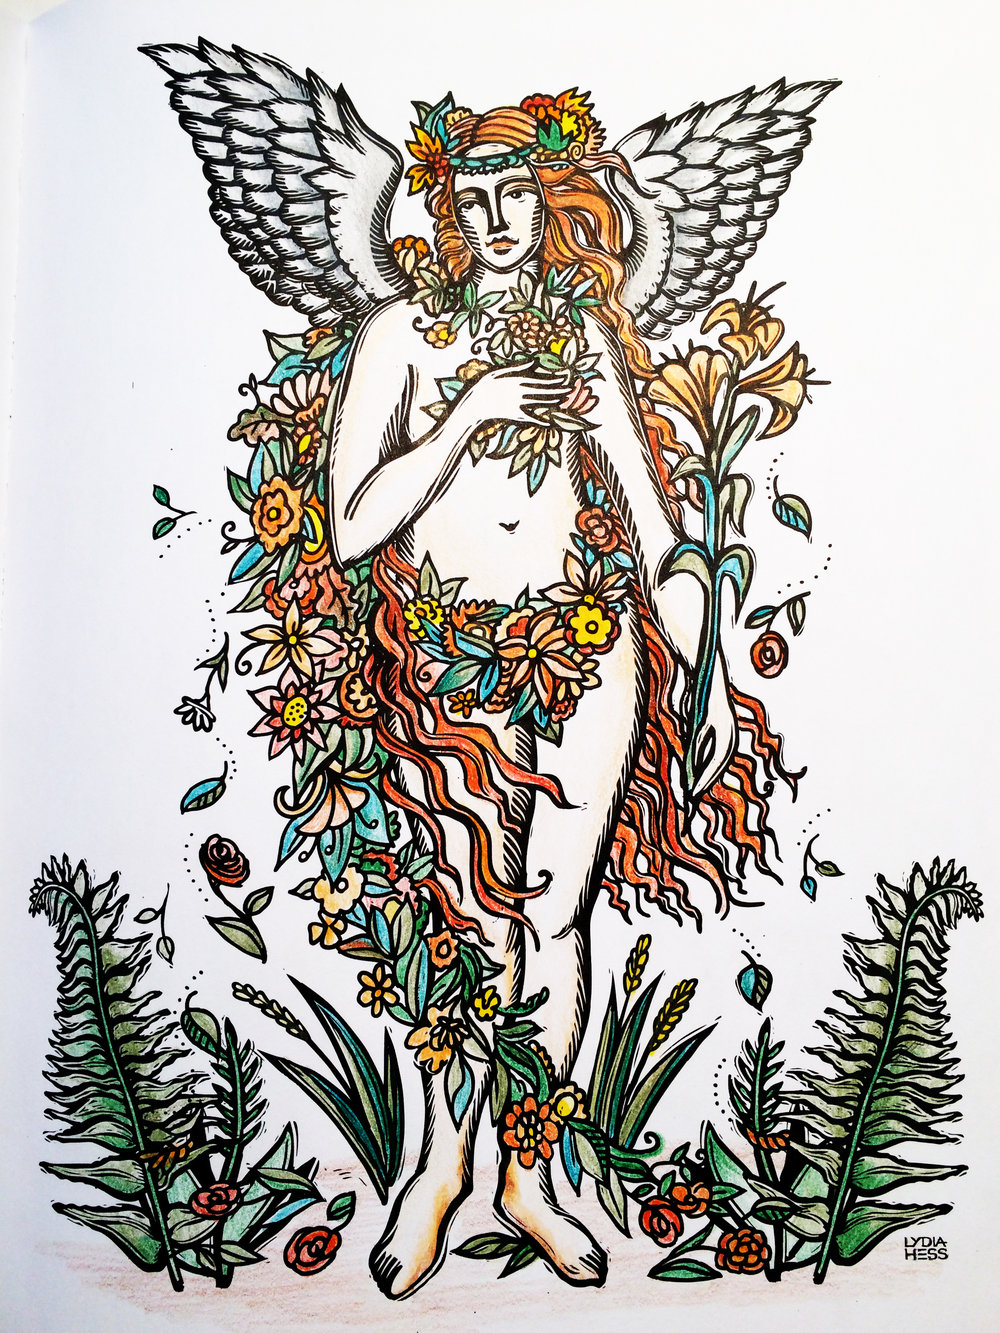 Tenderness - Angel - From Sacred Angels - Coloring Books for the Soul.